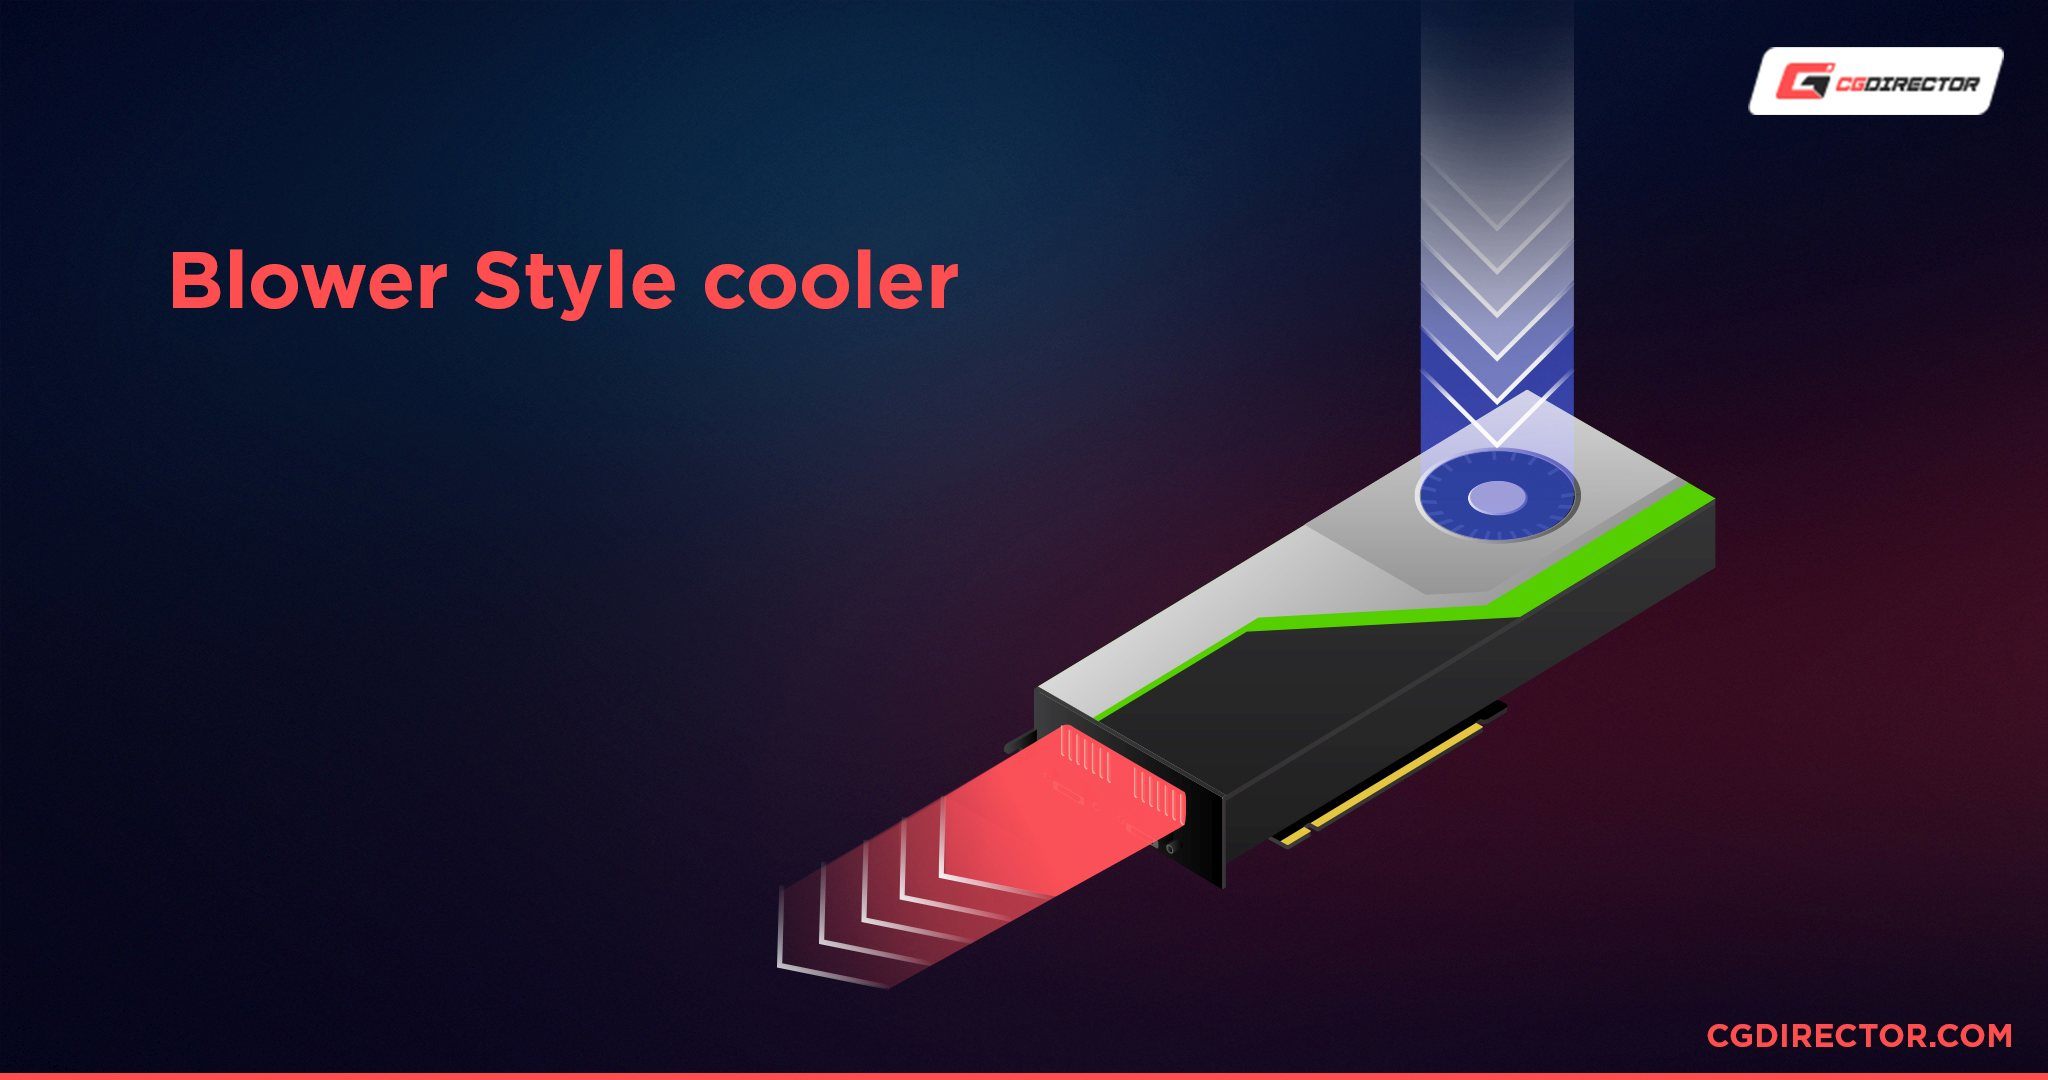 Blower style cooler Airflow